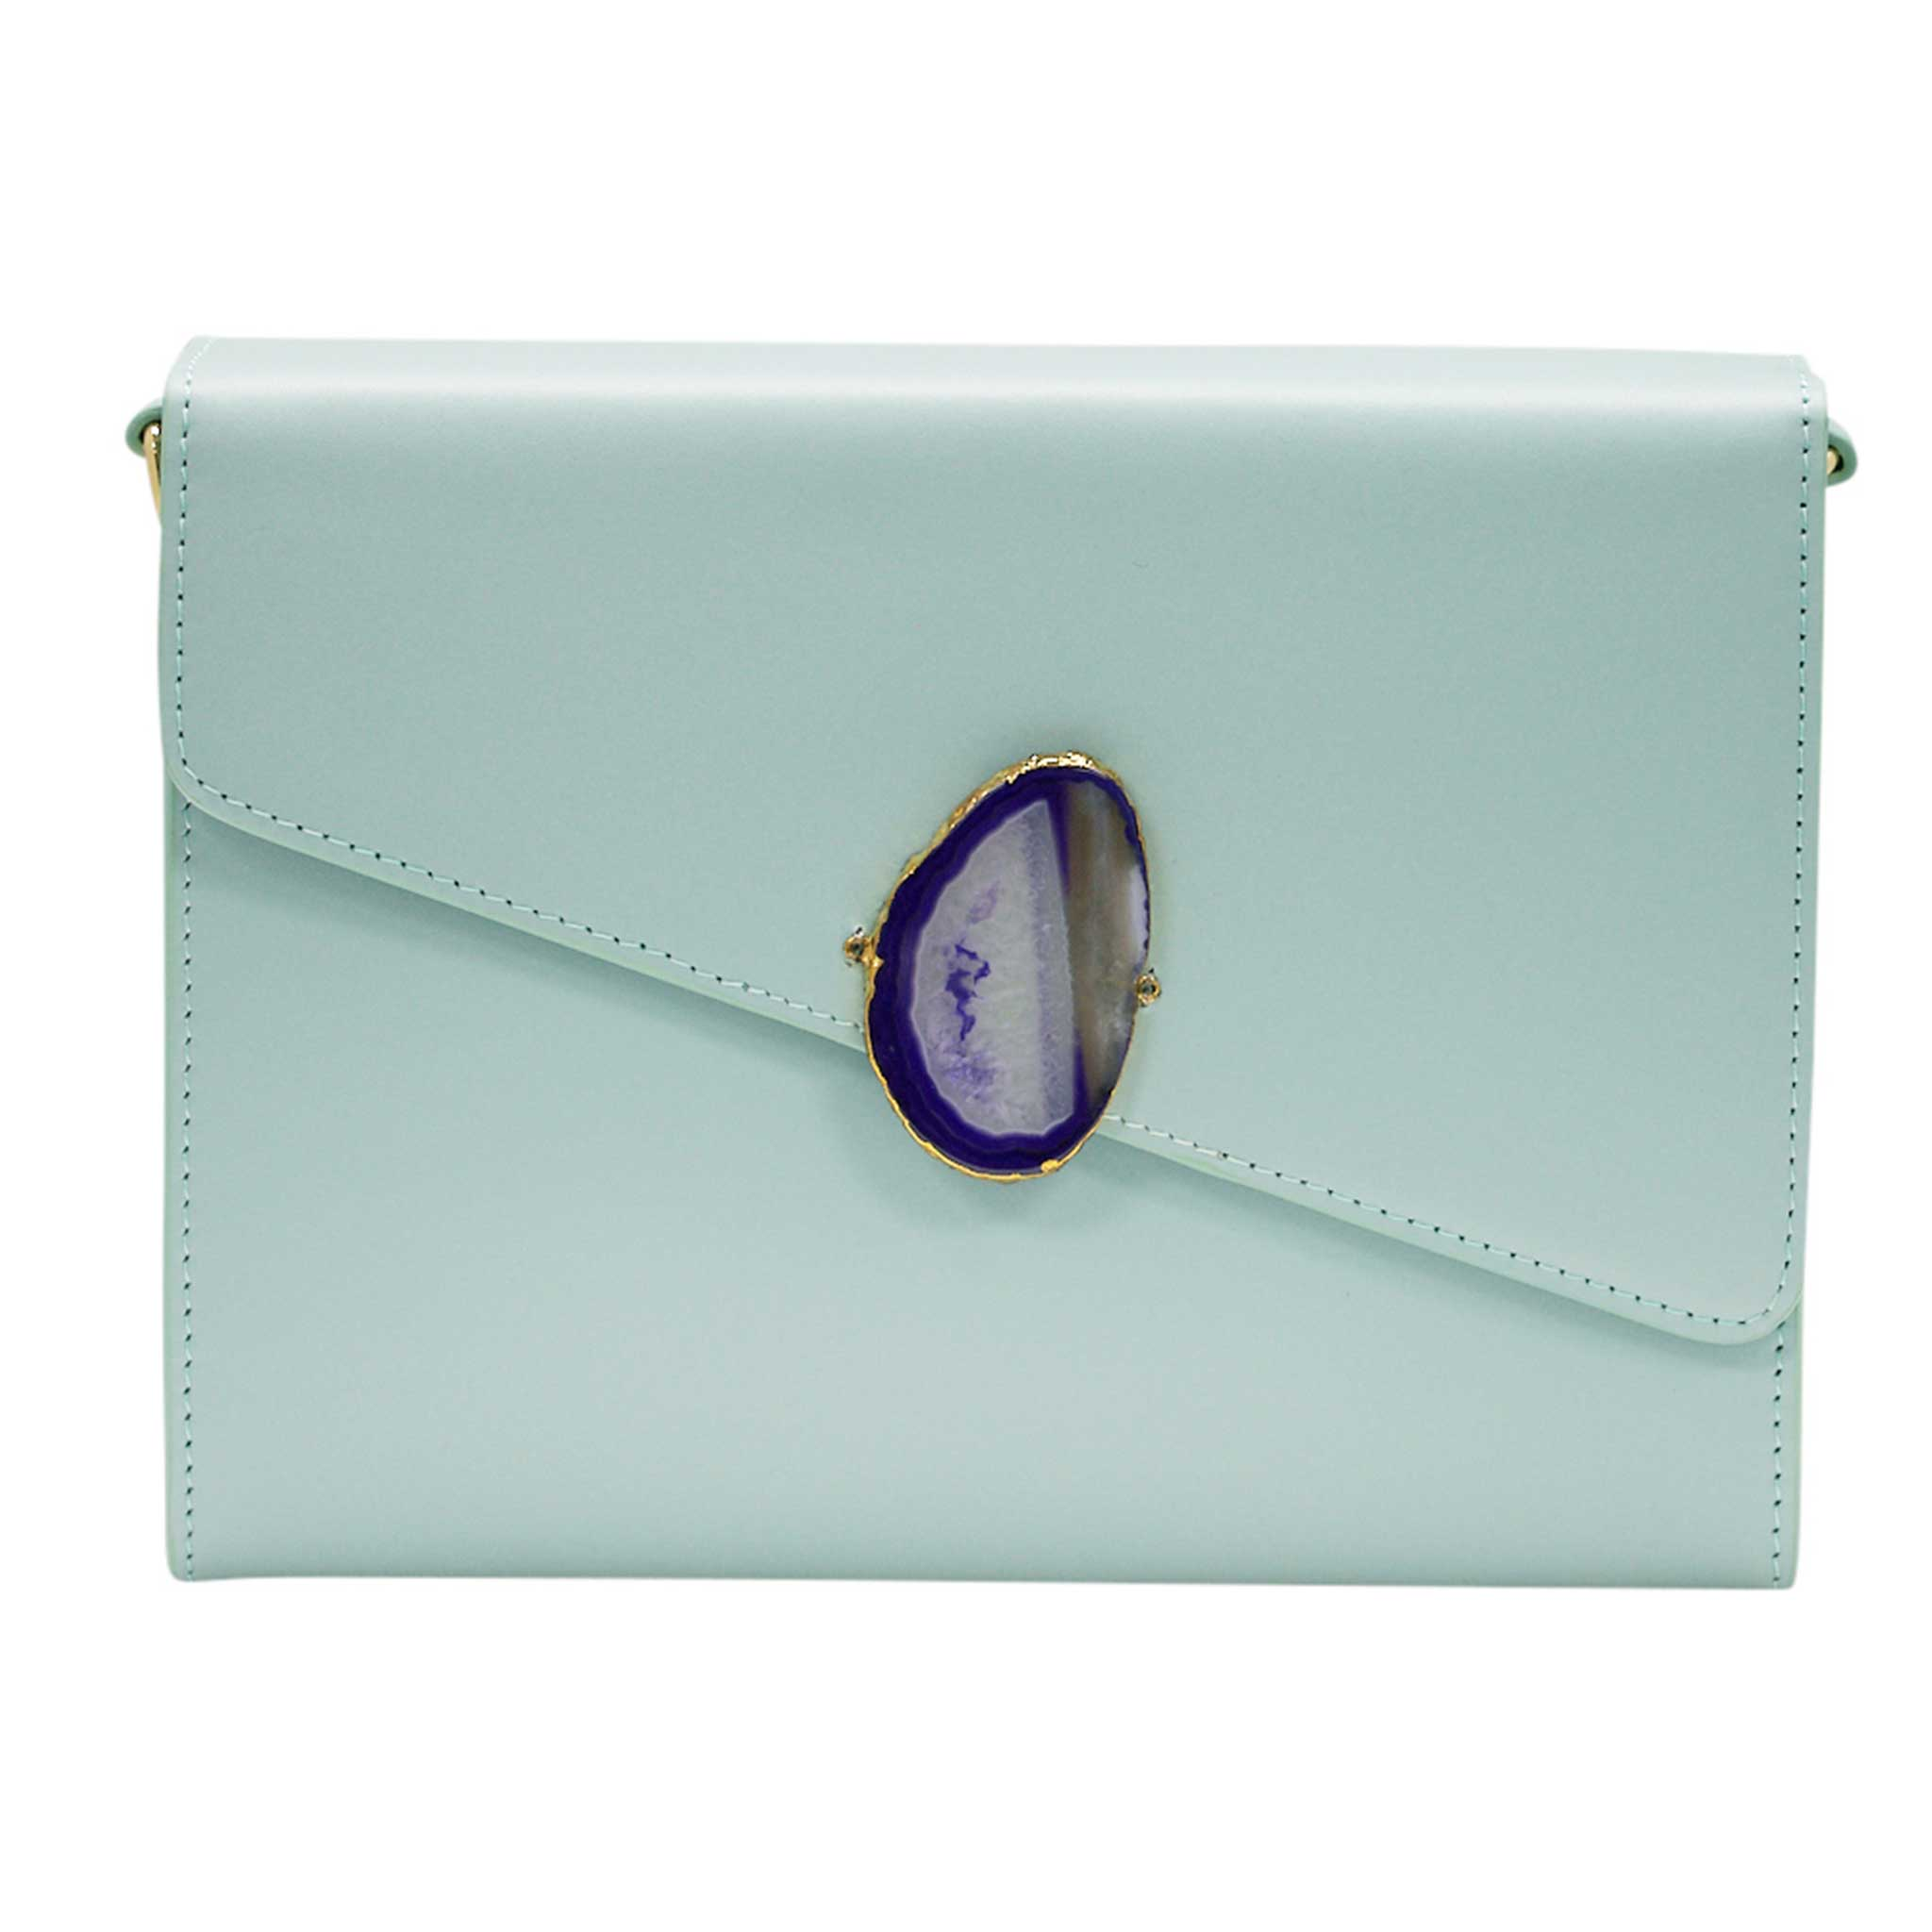 LOVED BAG - MOONSTONE WHITE LEATHER WITH BLUE AGATE - 1.02.006.048